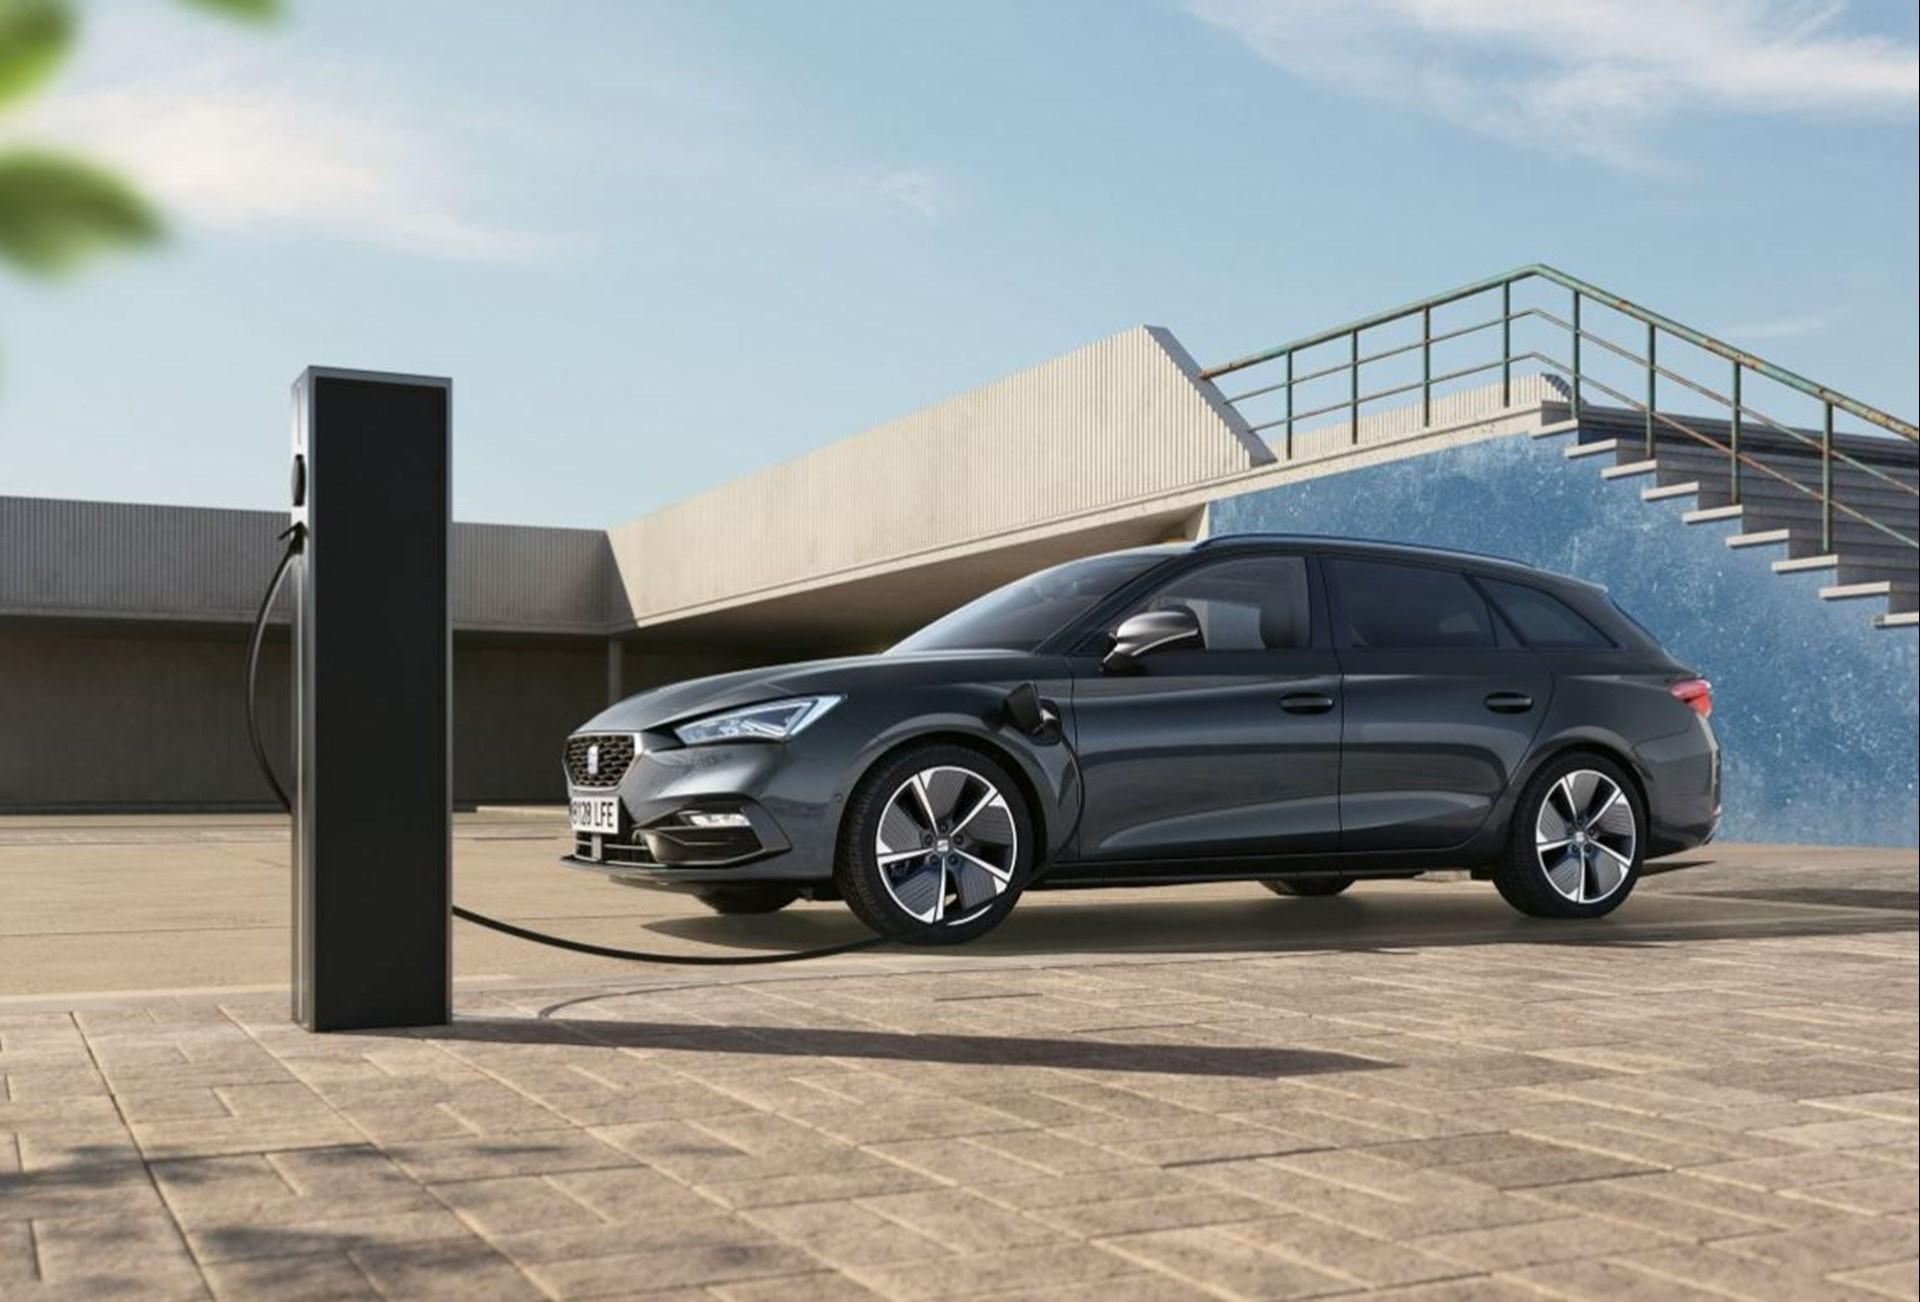 The new SEAT Leon Estate e-HYBRID